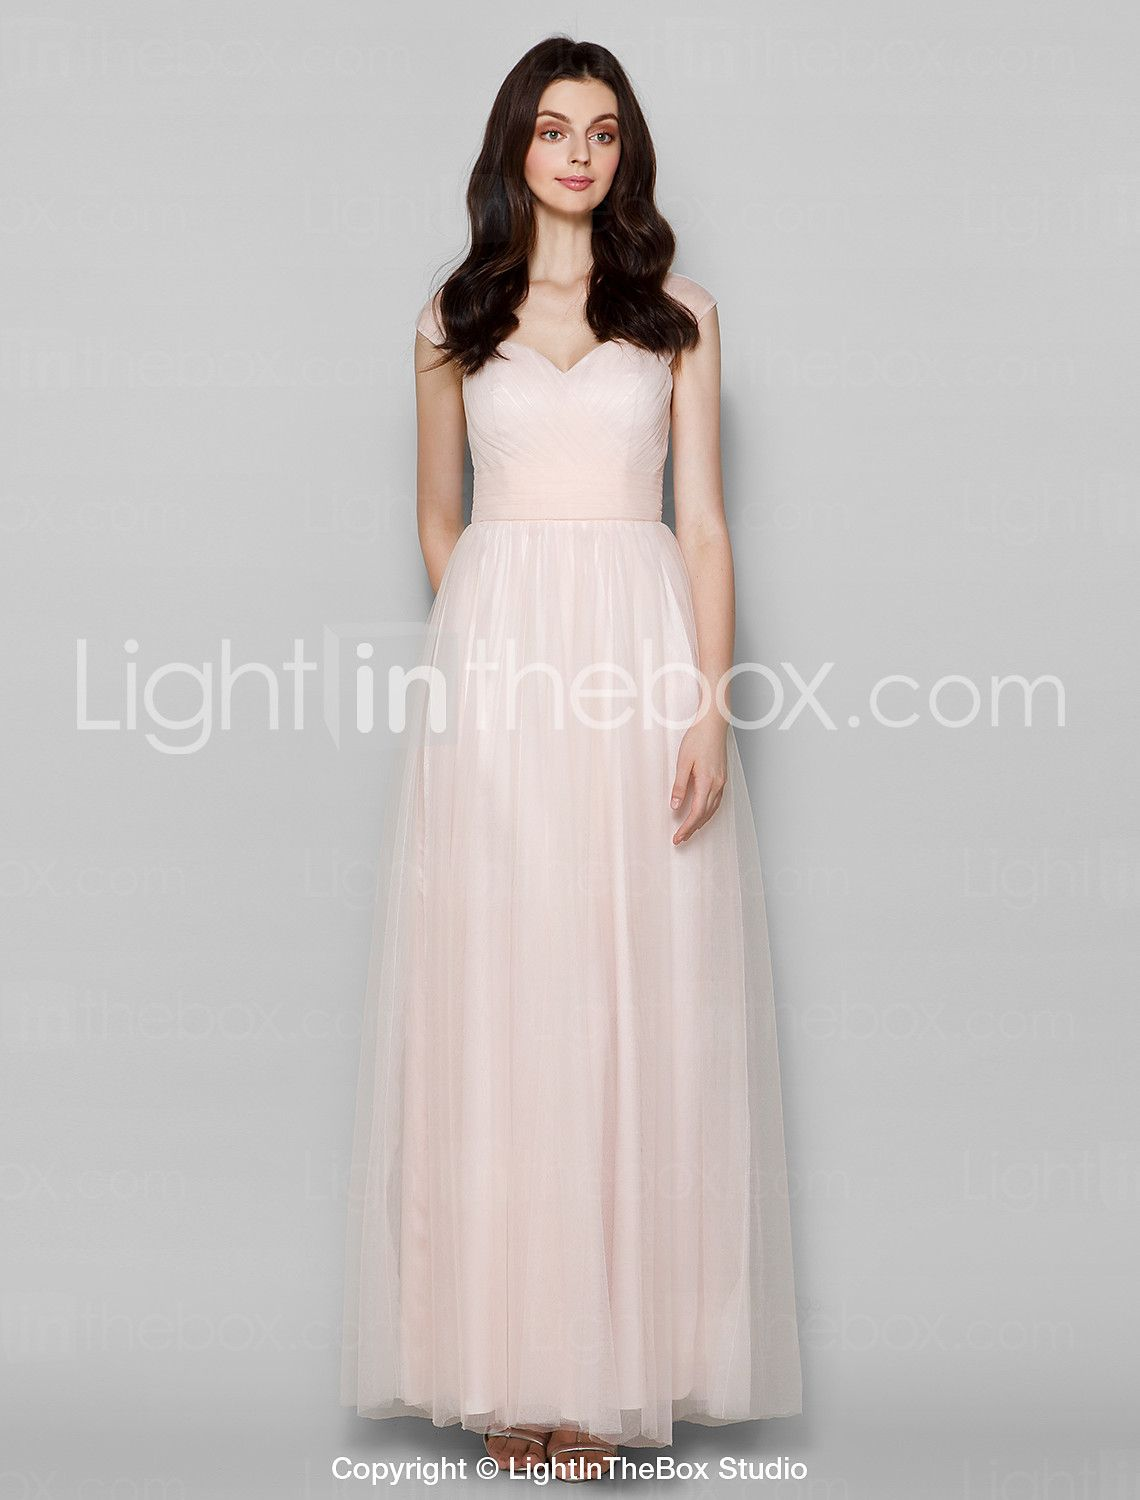 Lightinthebox wedding dresses  Sheath  Column Queen Anne Floor Length Tulle Bridesmaid Dress with